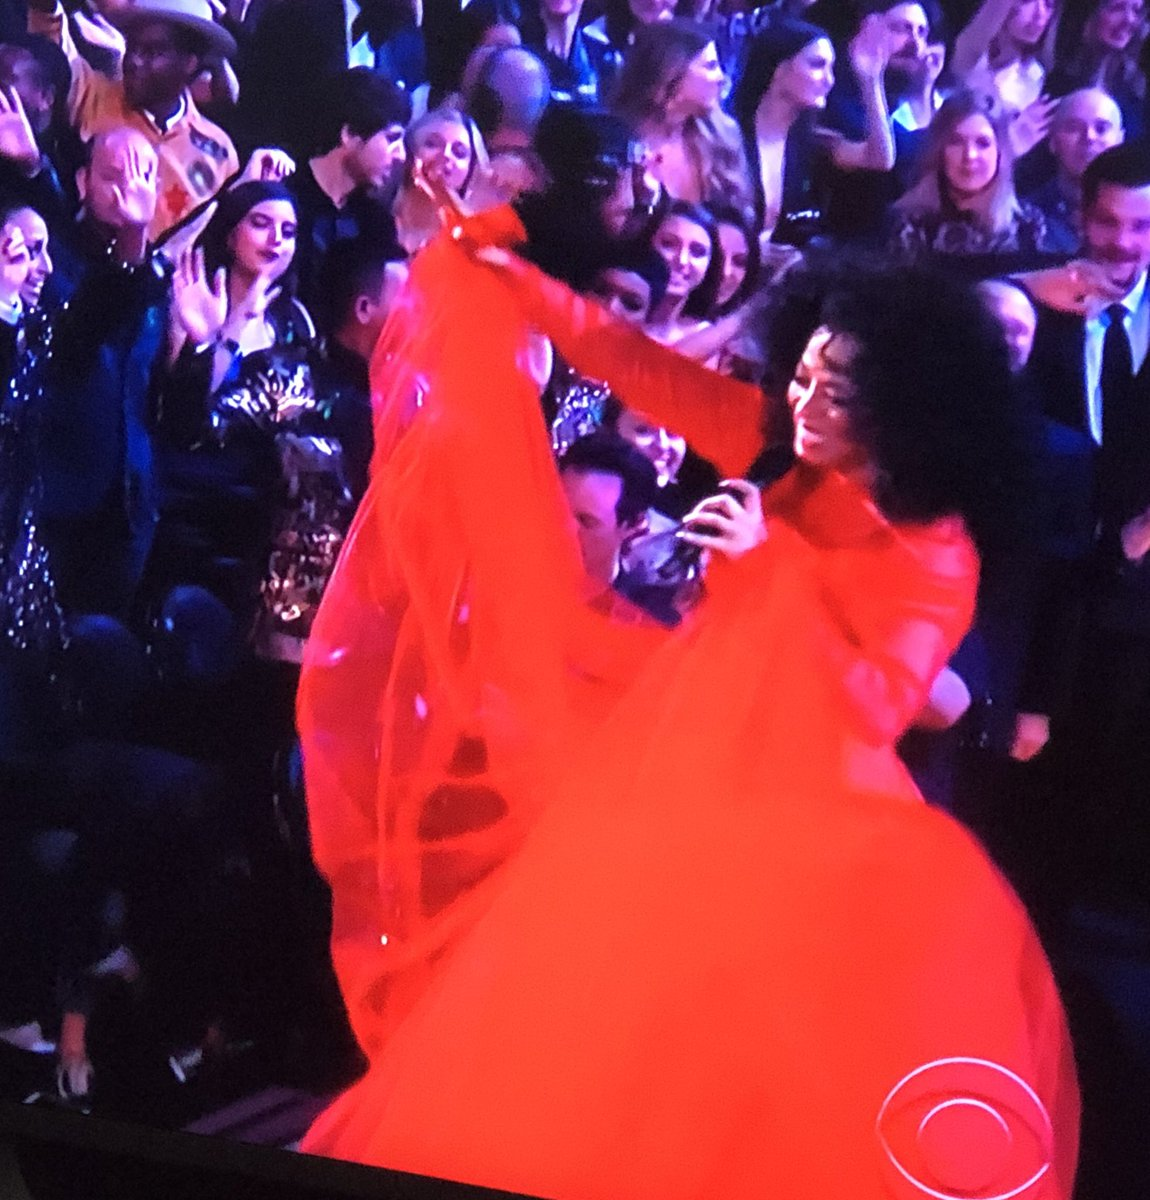 #Grammys2019 Rocked@DianaRoss Soulful Magic was beautiful <br>http://pic.twitter.com/Fvzoc61tuo